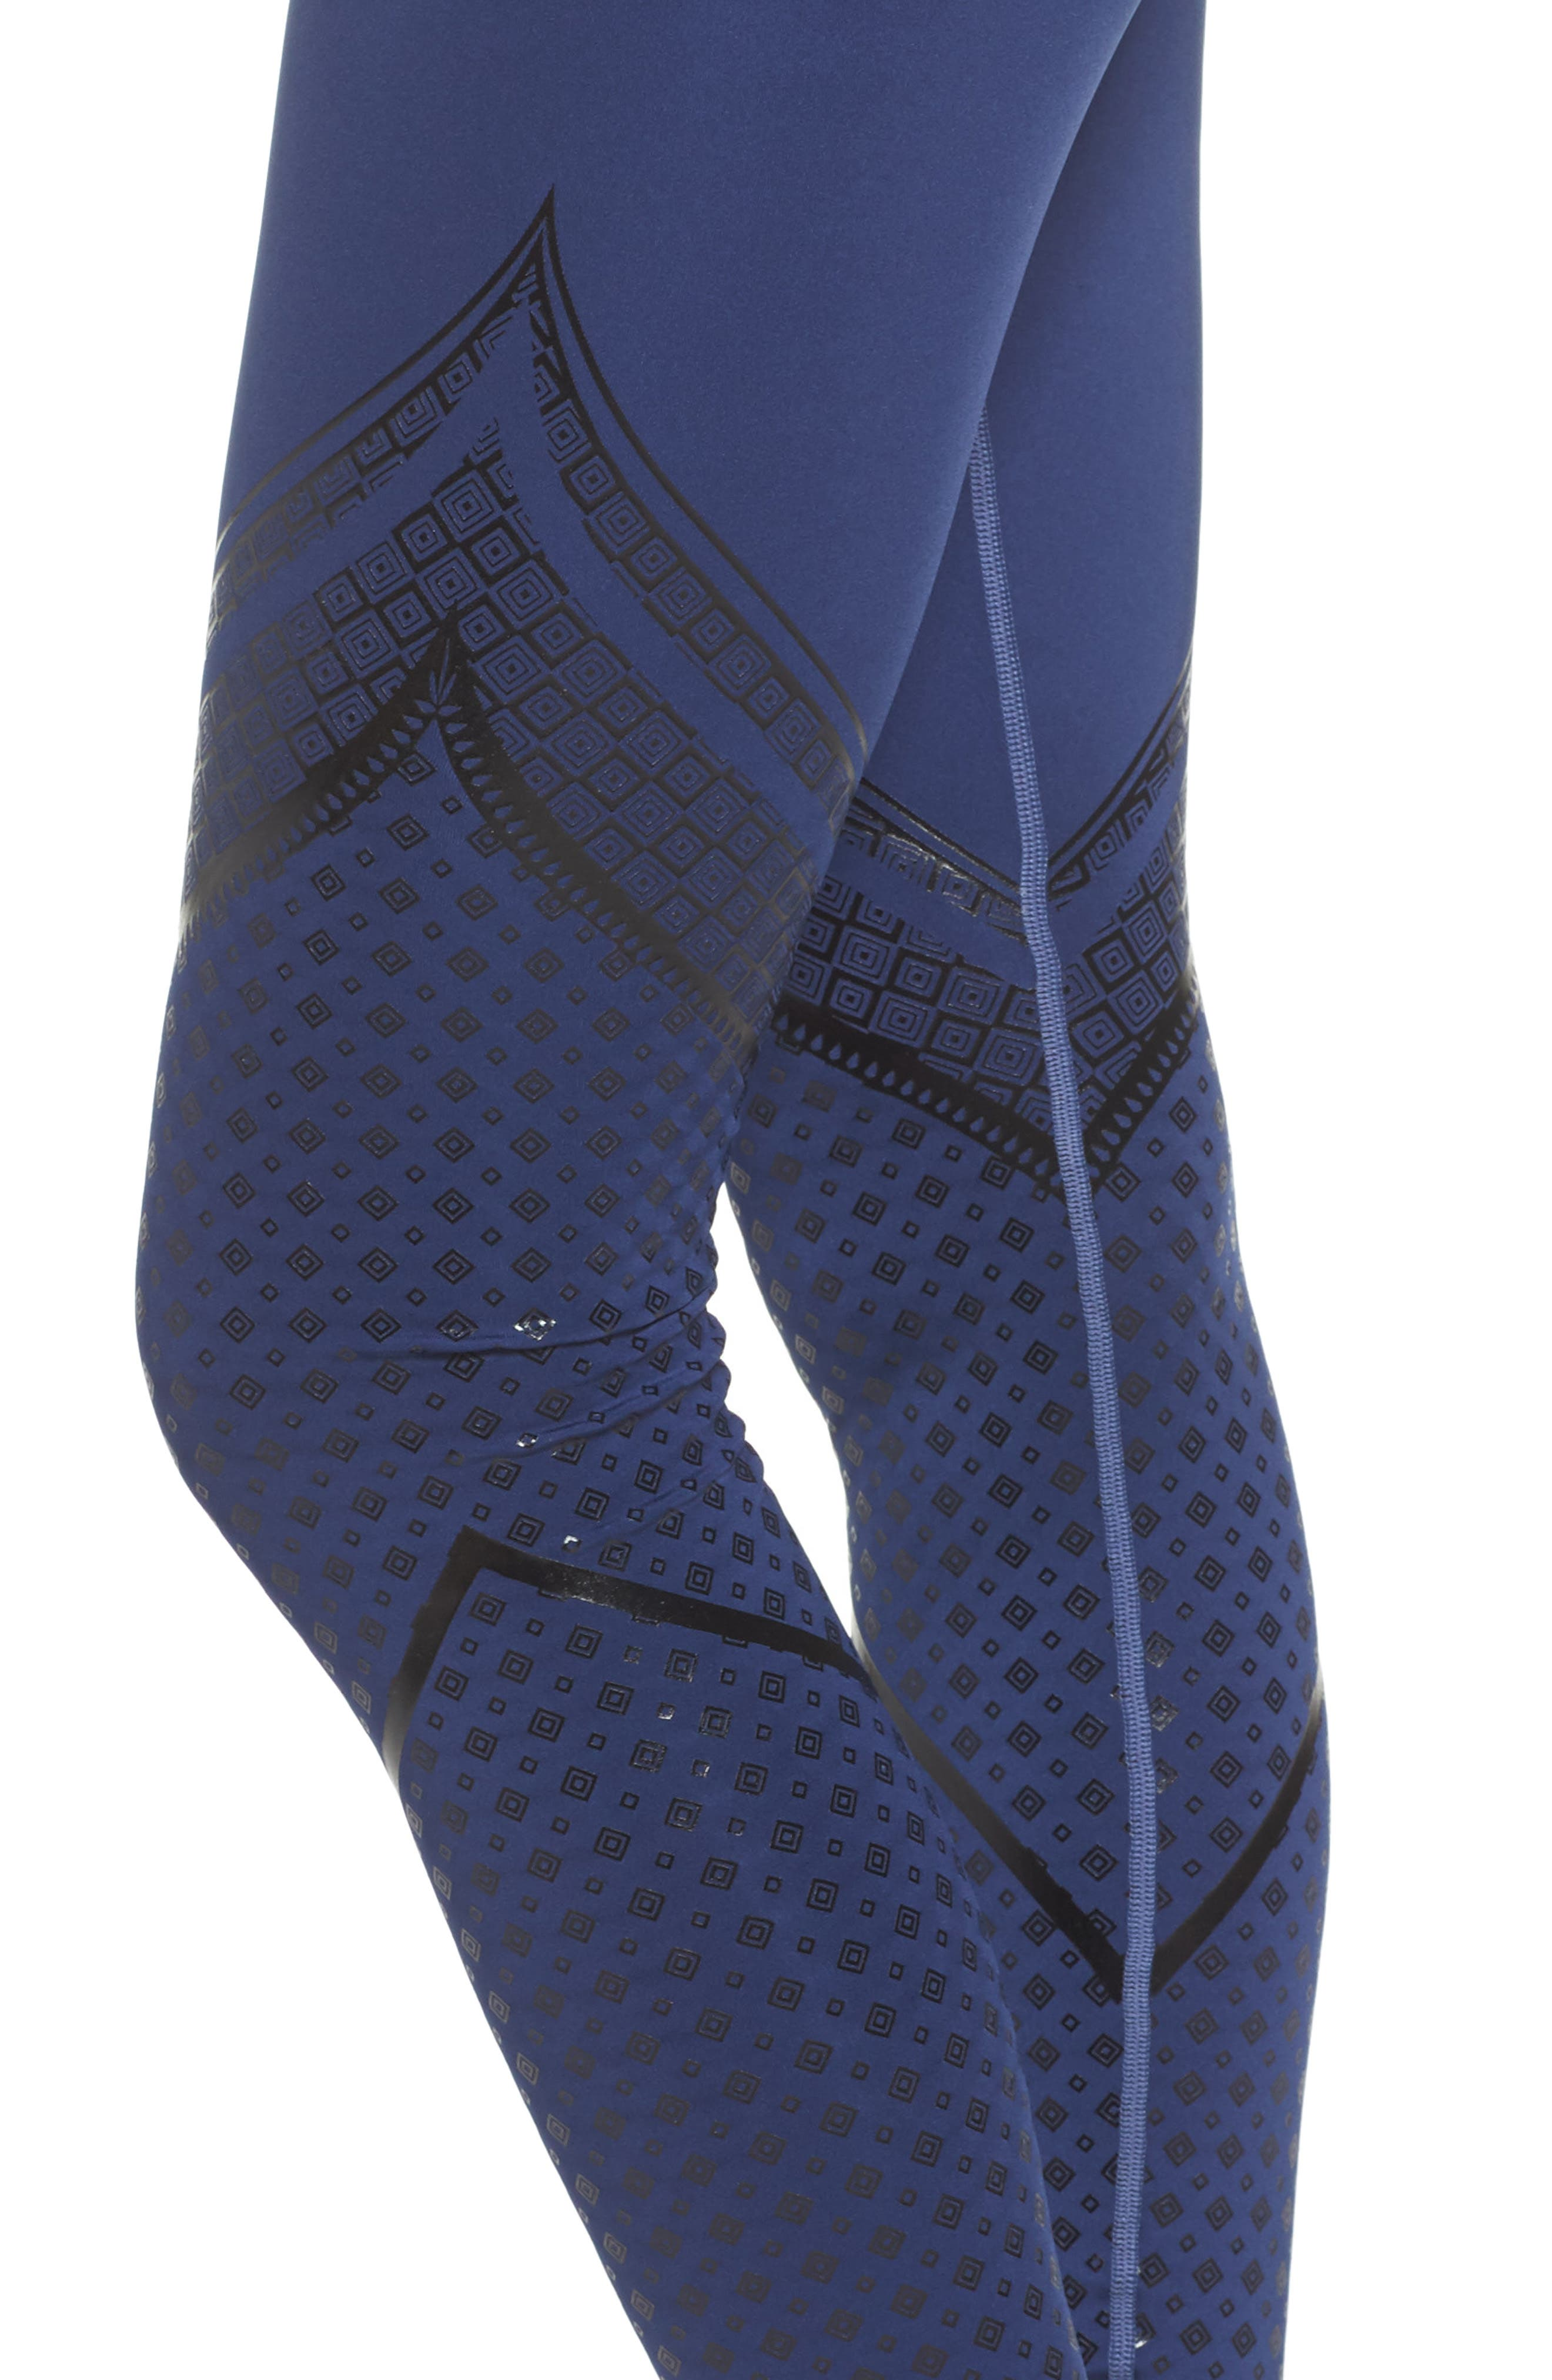 Everyday Train Tights,                             Alternate thumbnail 4, color,                             Blue Indigo